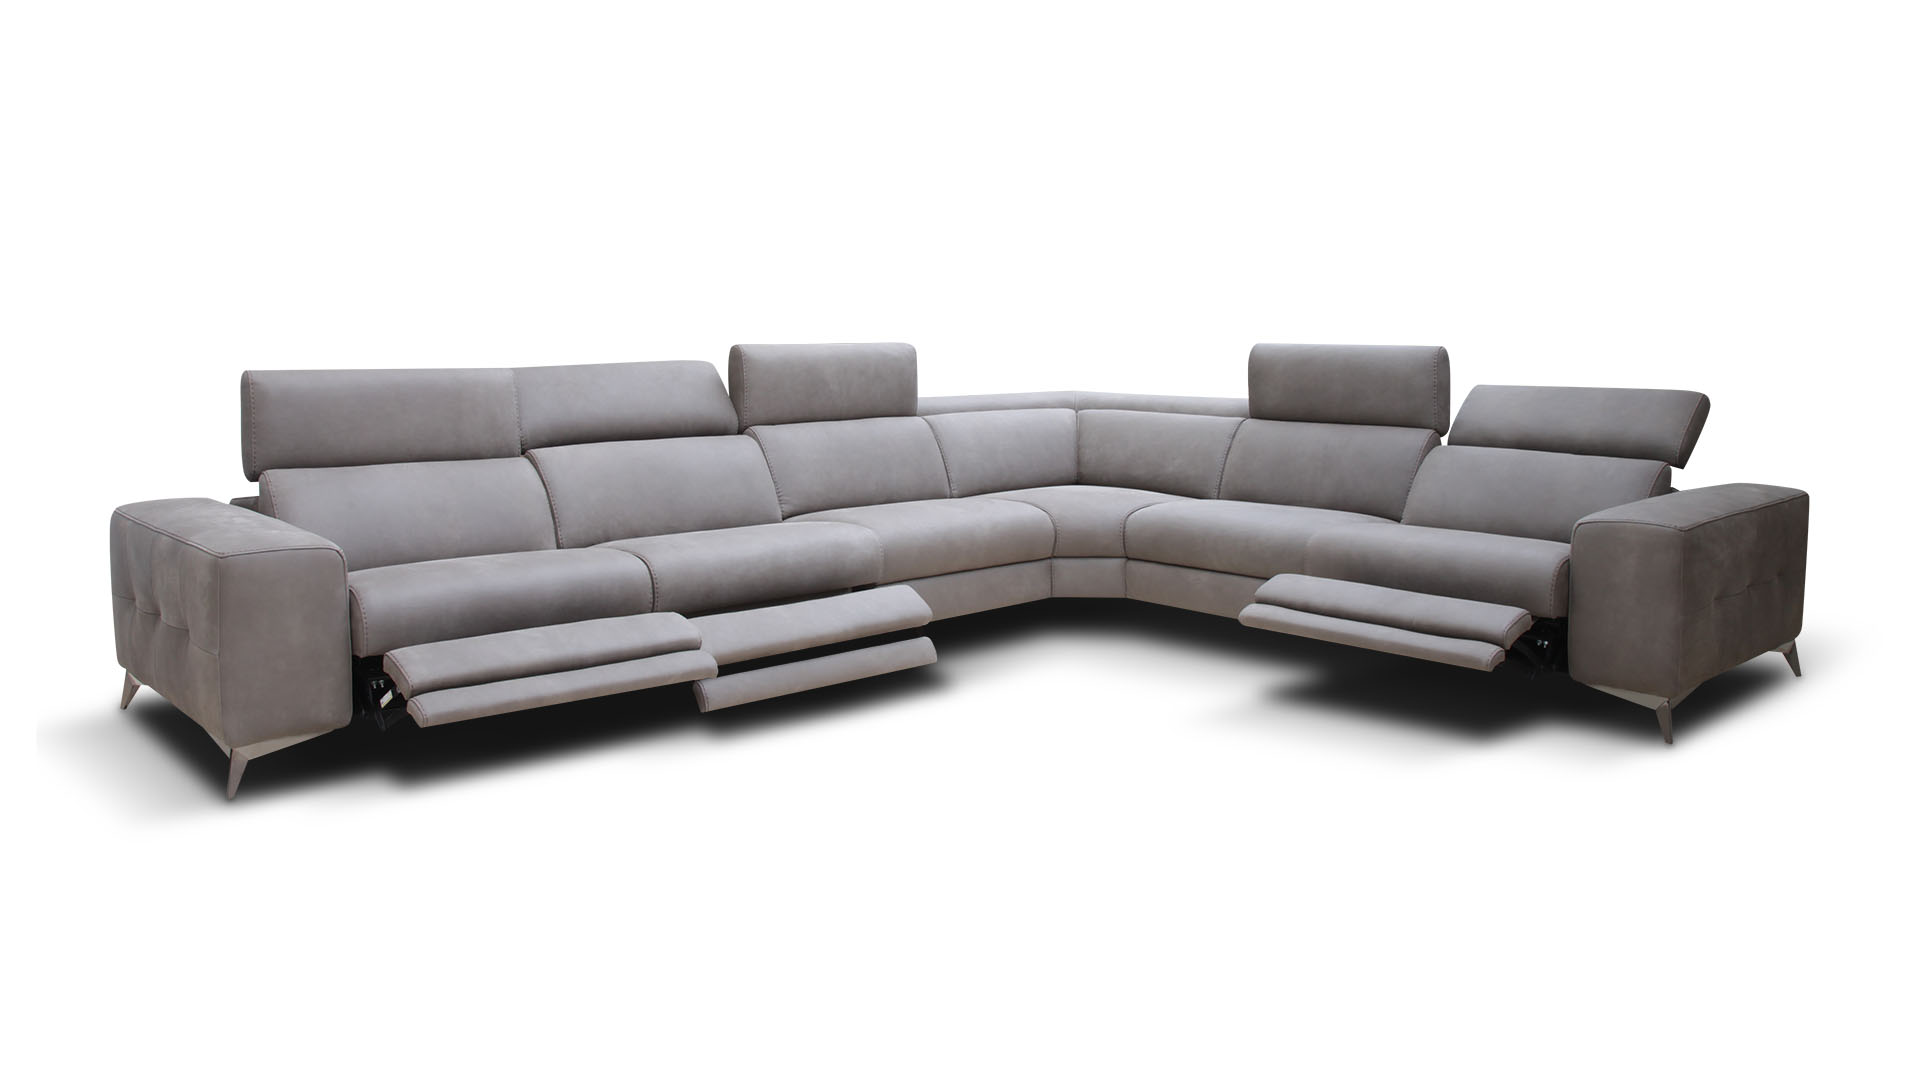 Bracci Tessa power sectional